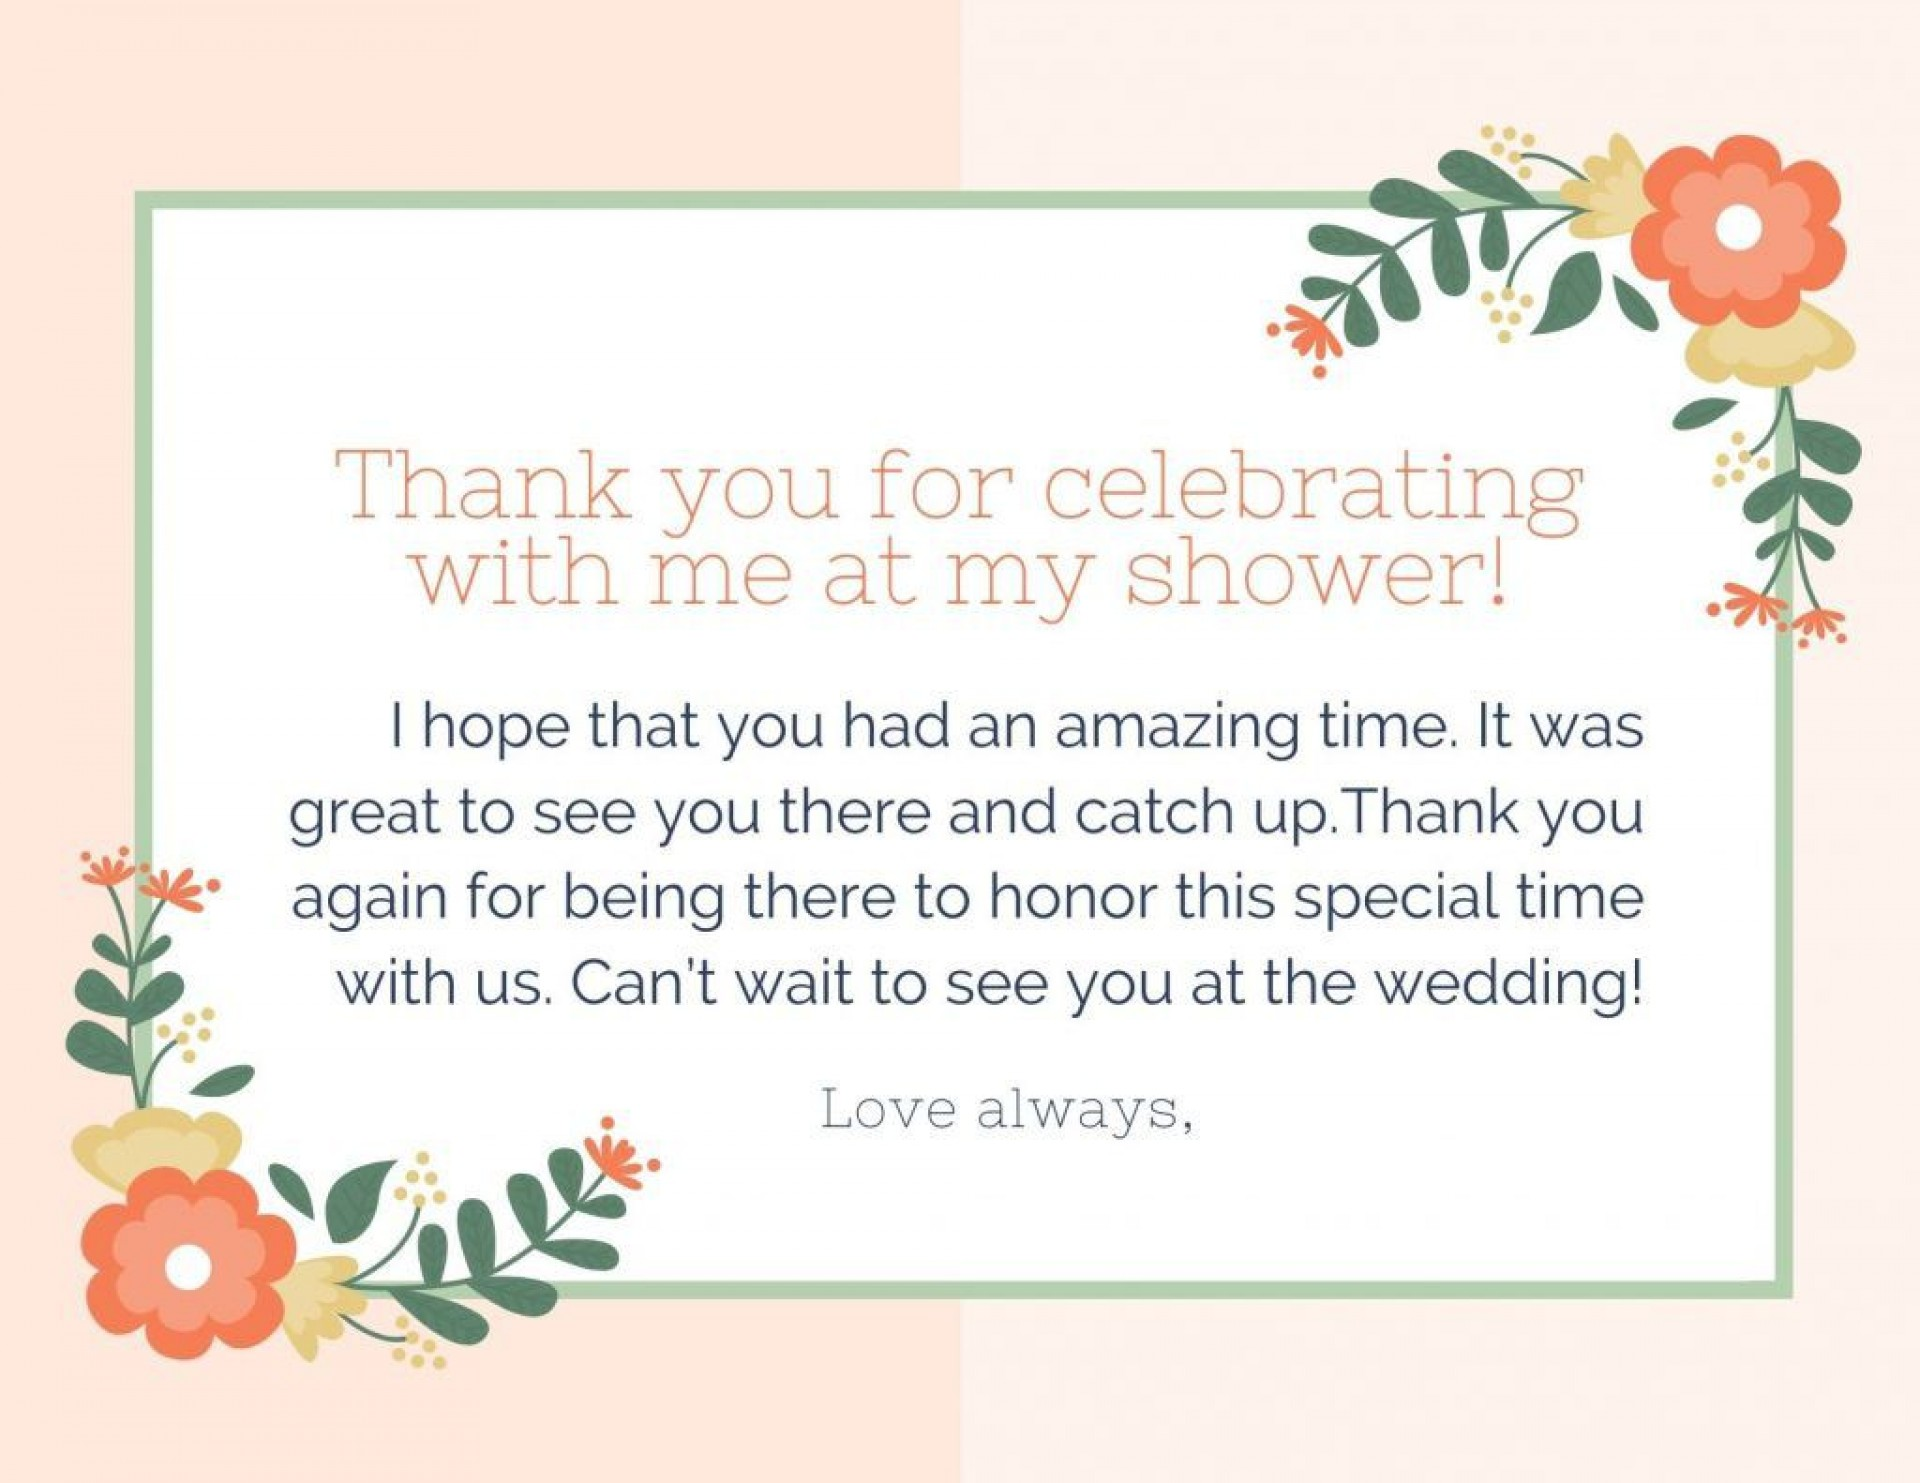 006 Stunning Thank You Note Template Wedding Shower High Resolution  Bridal Card Sample Wording1920